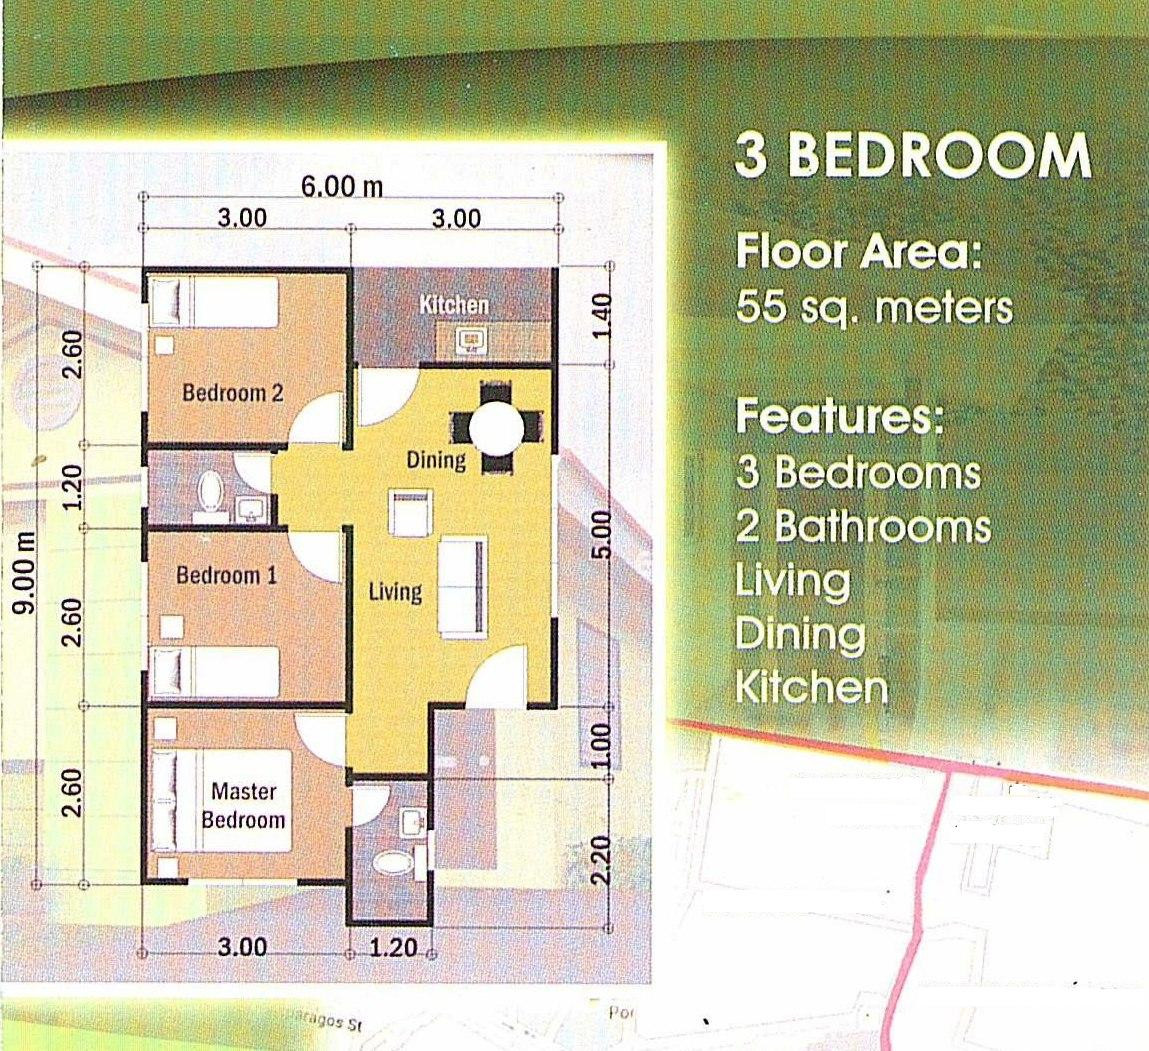 Best ideas about Bedroom Floor Plan . Save or Pin East Homes Mansilingan Now.